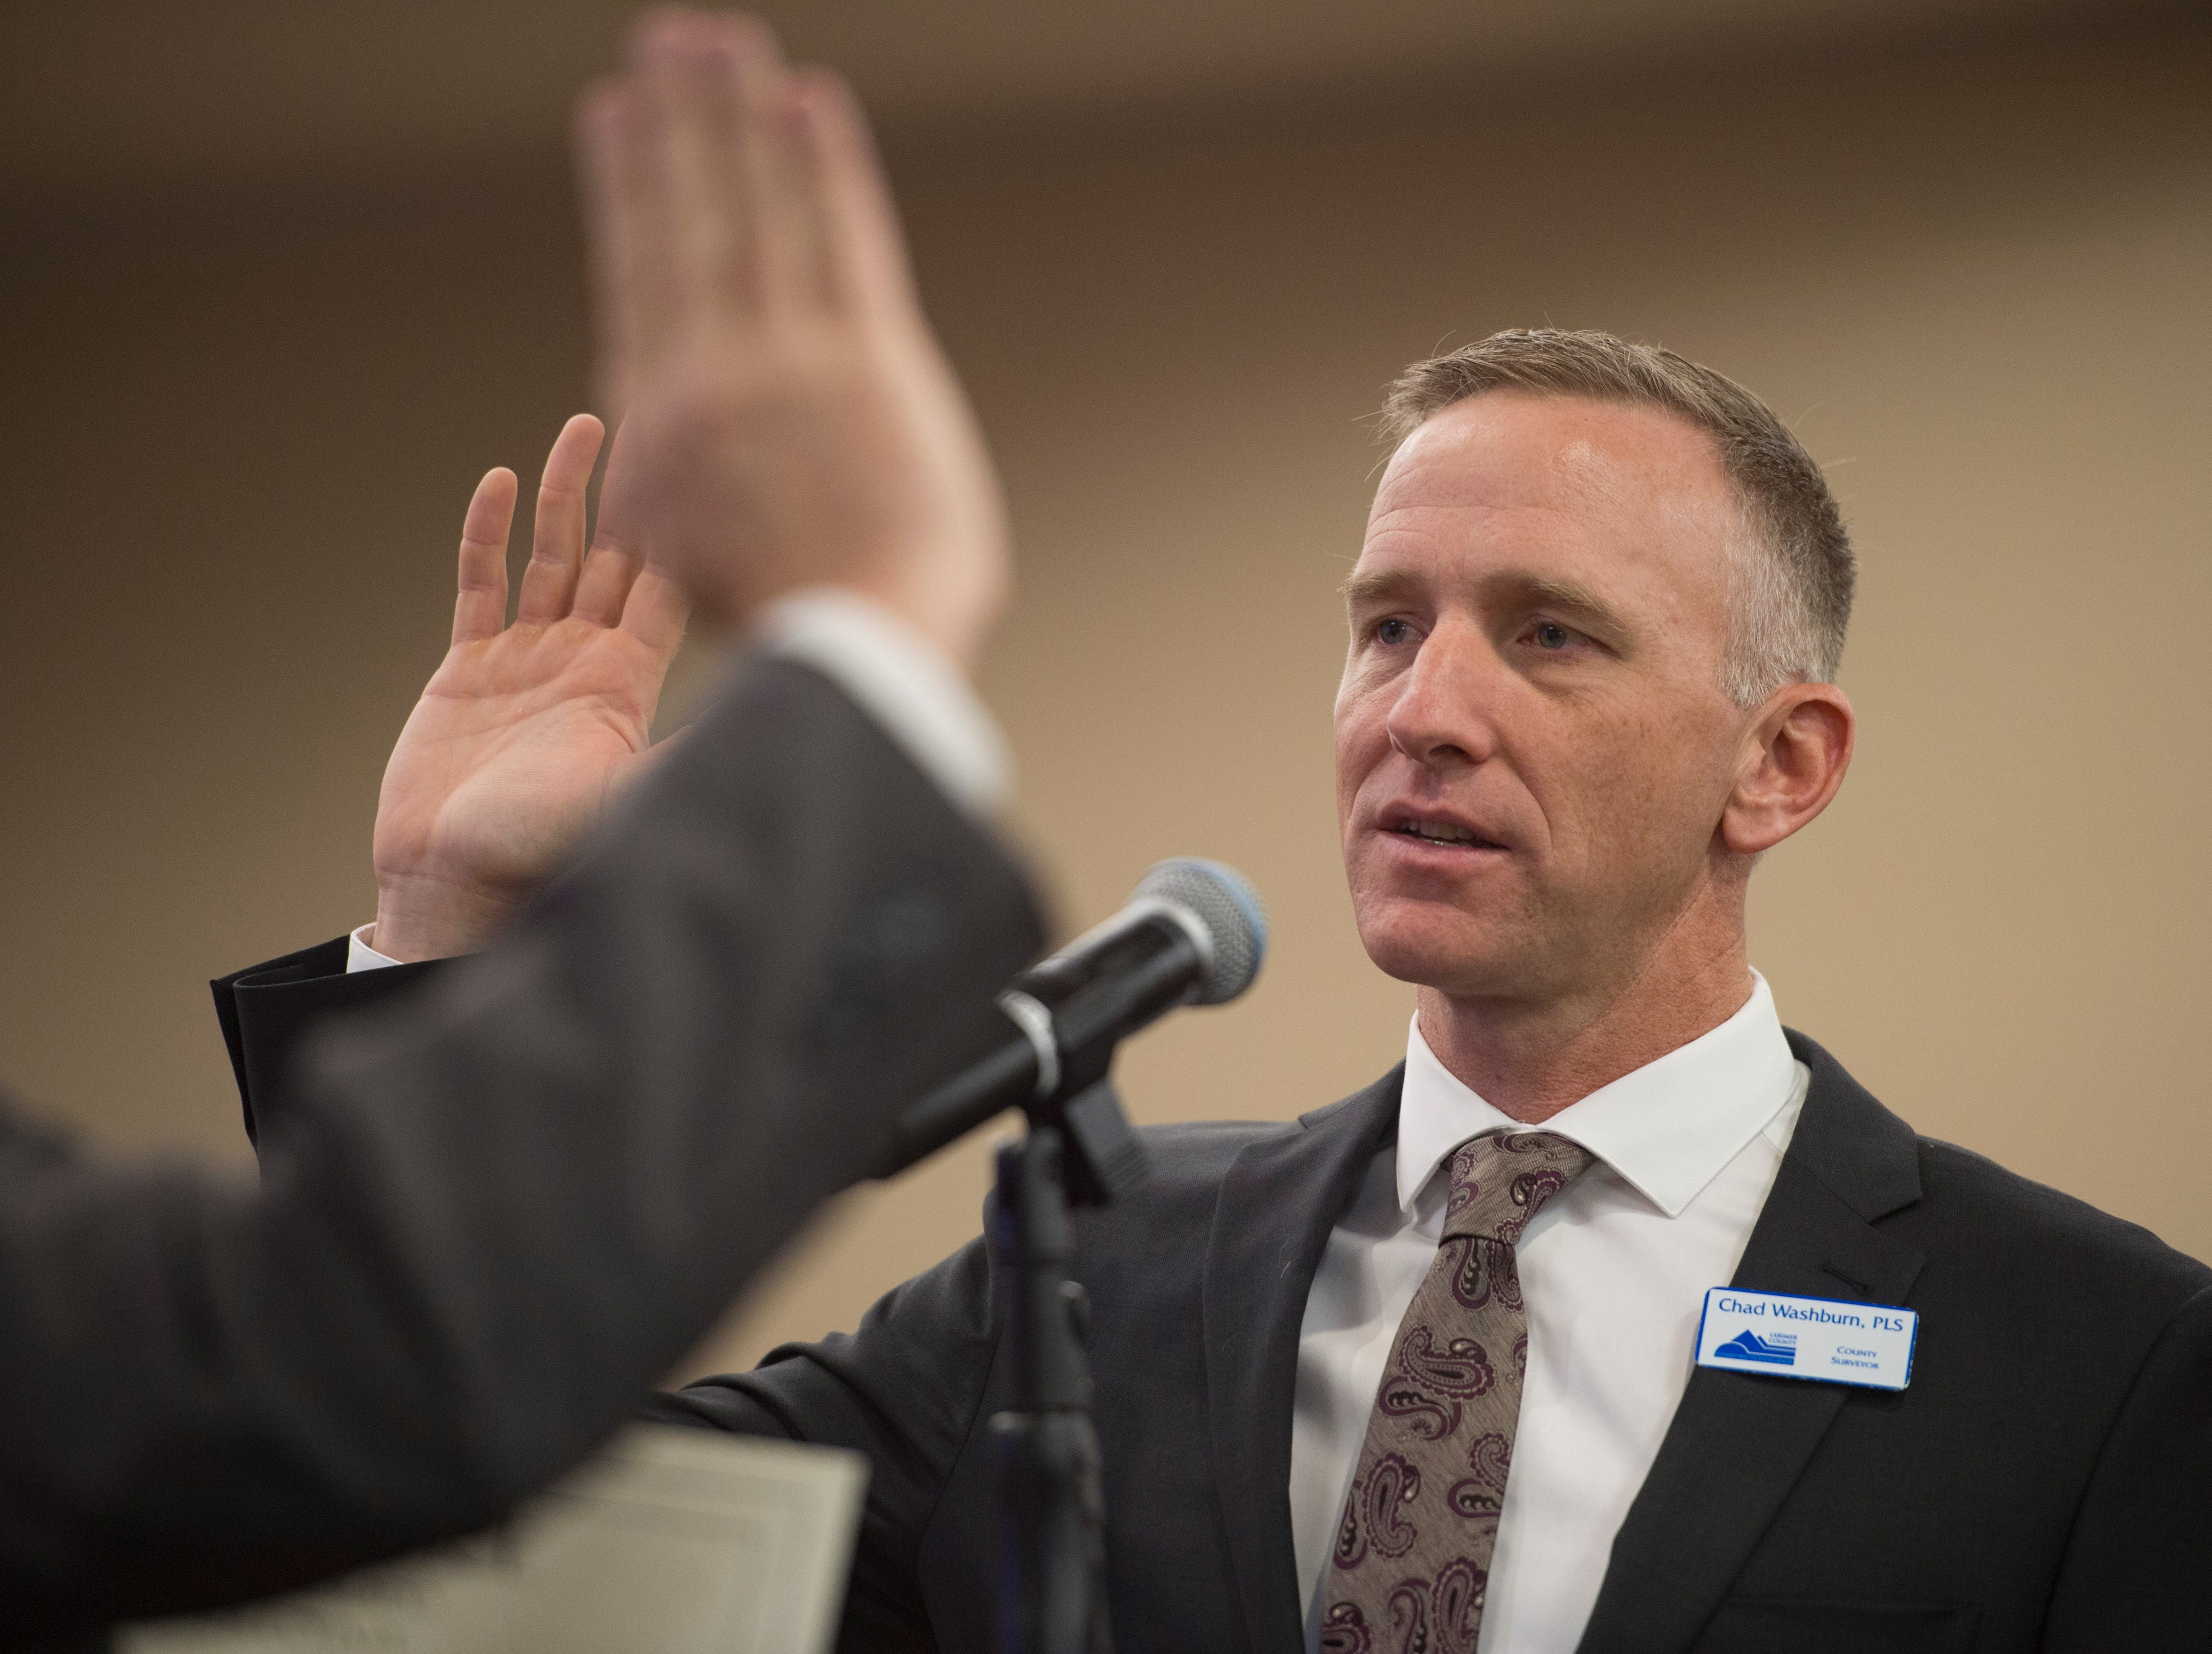 Larimer County Surveyor Chad Washburn is sworn in for another term at the Larimer County Courthouse on Tuesday, January 8, 2019.